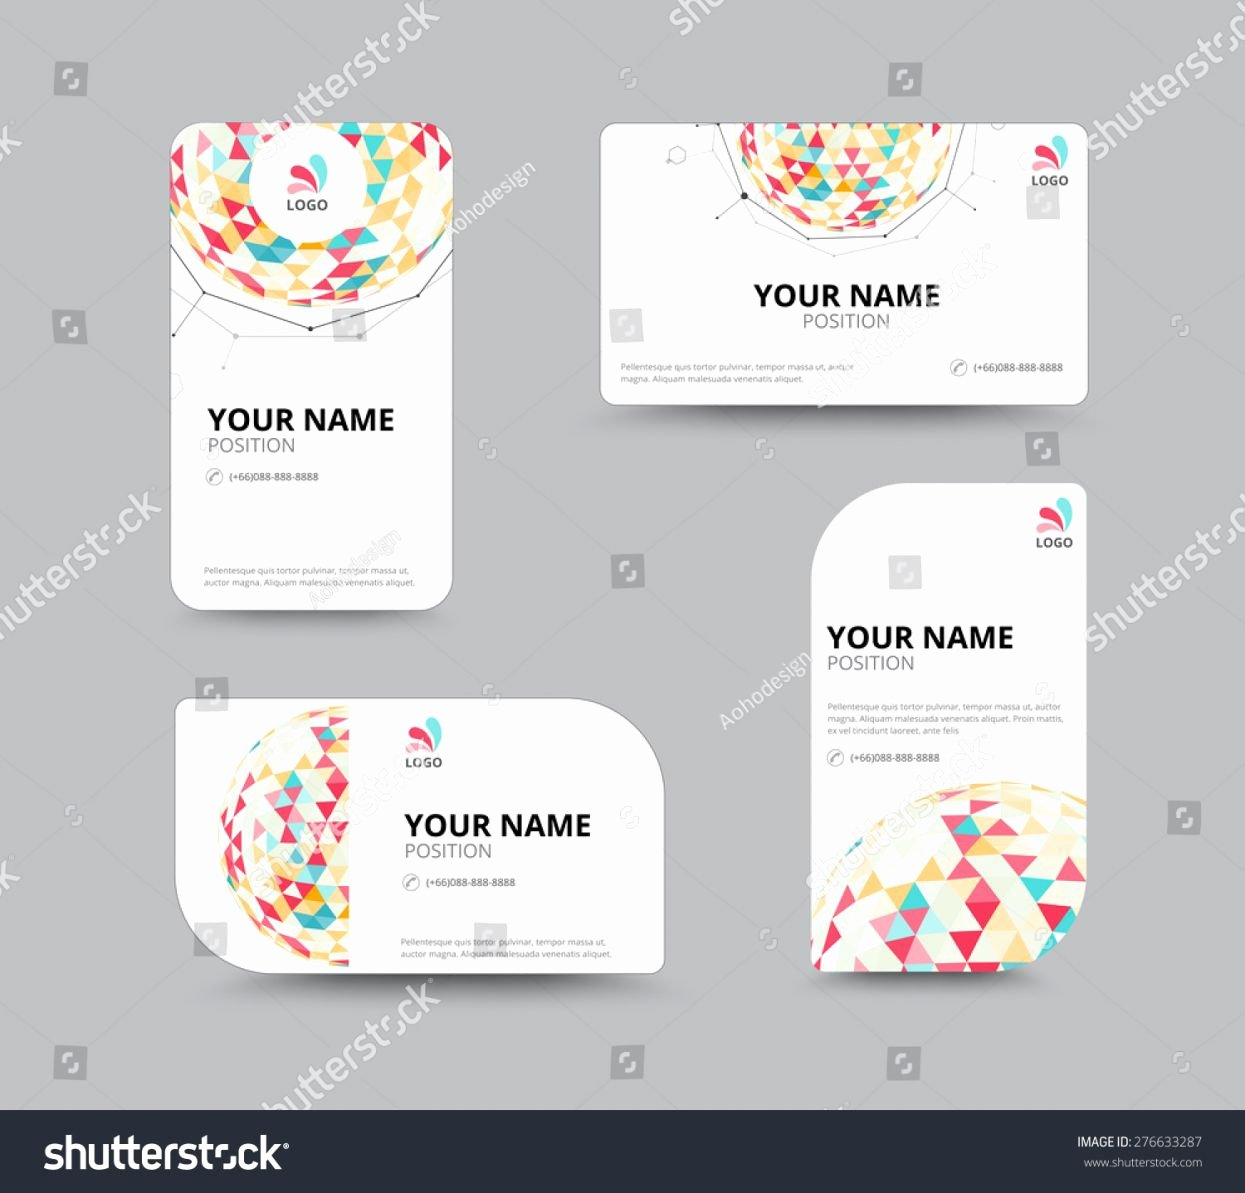 Microsoft Publisher Business Card Templates Image